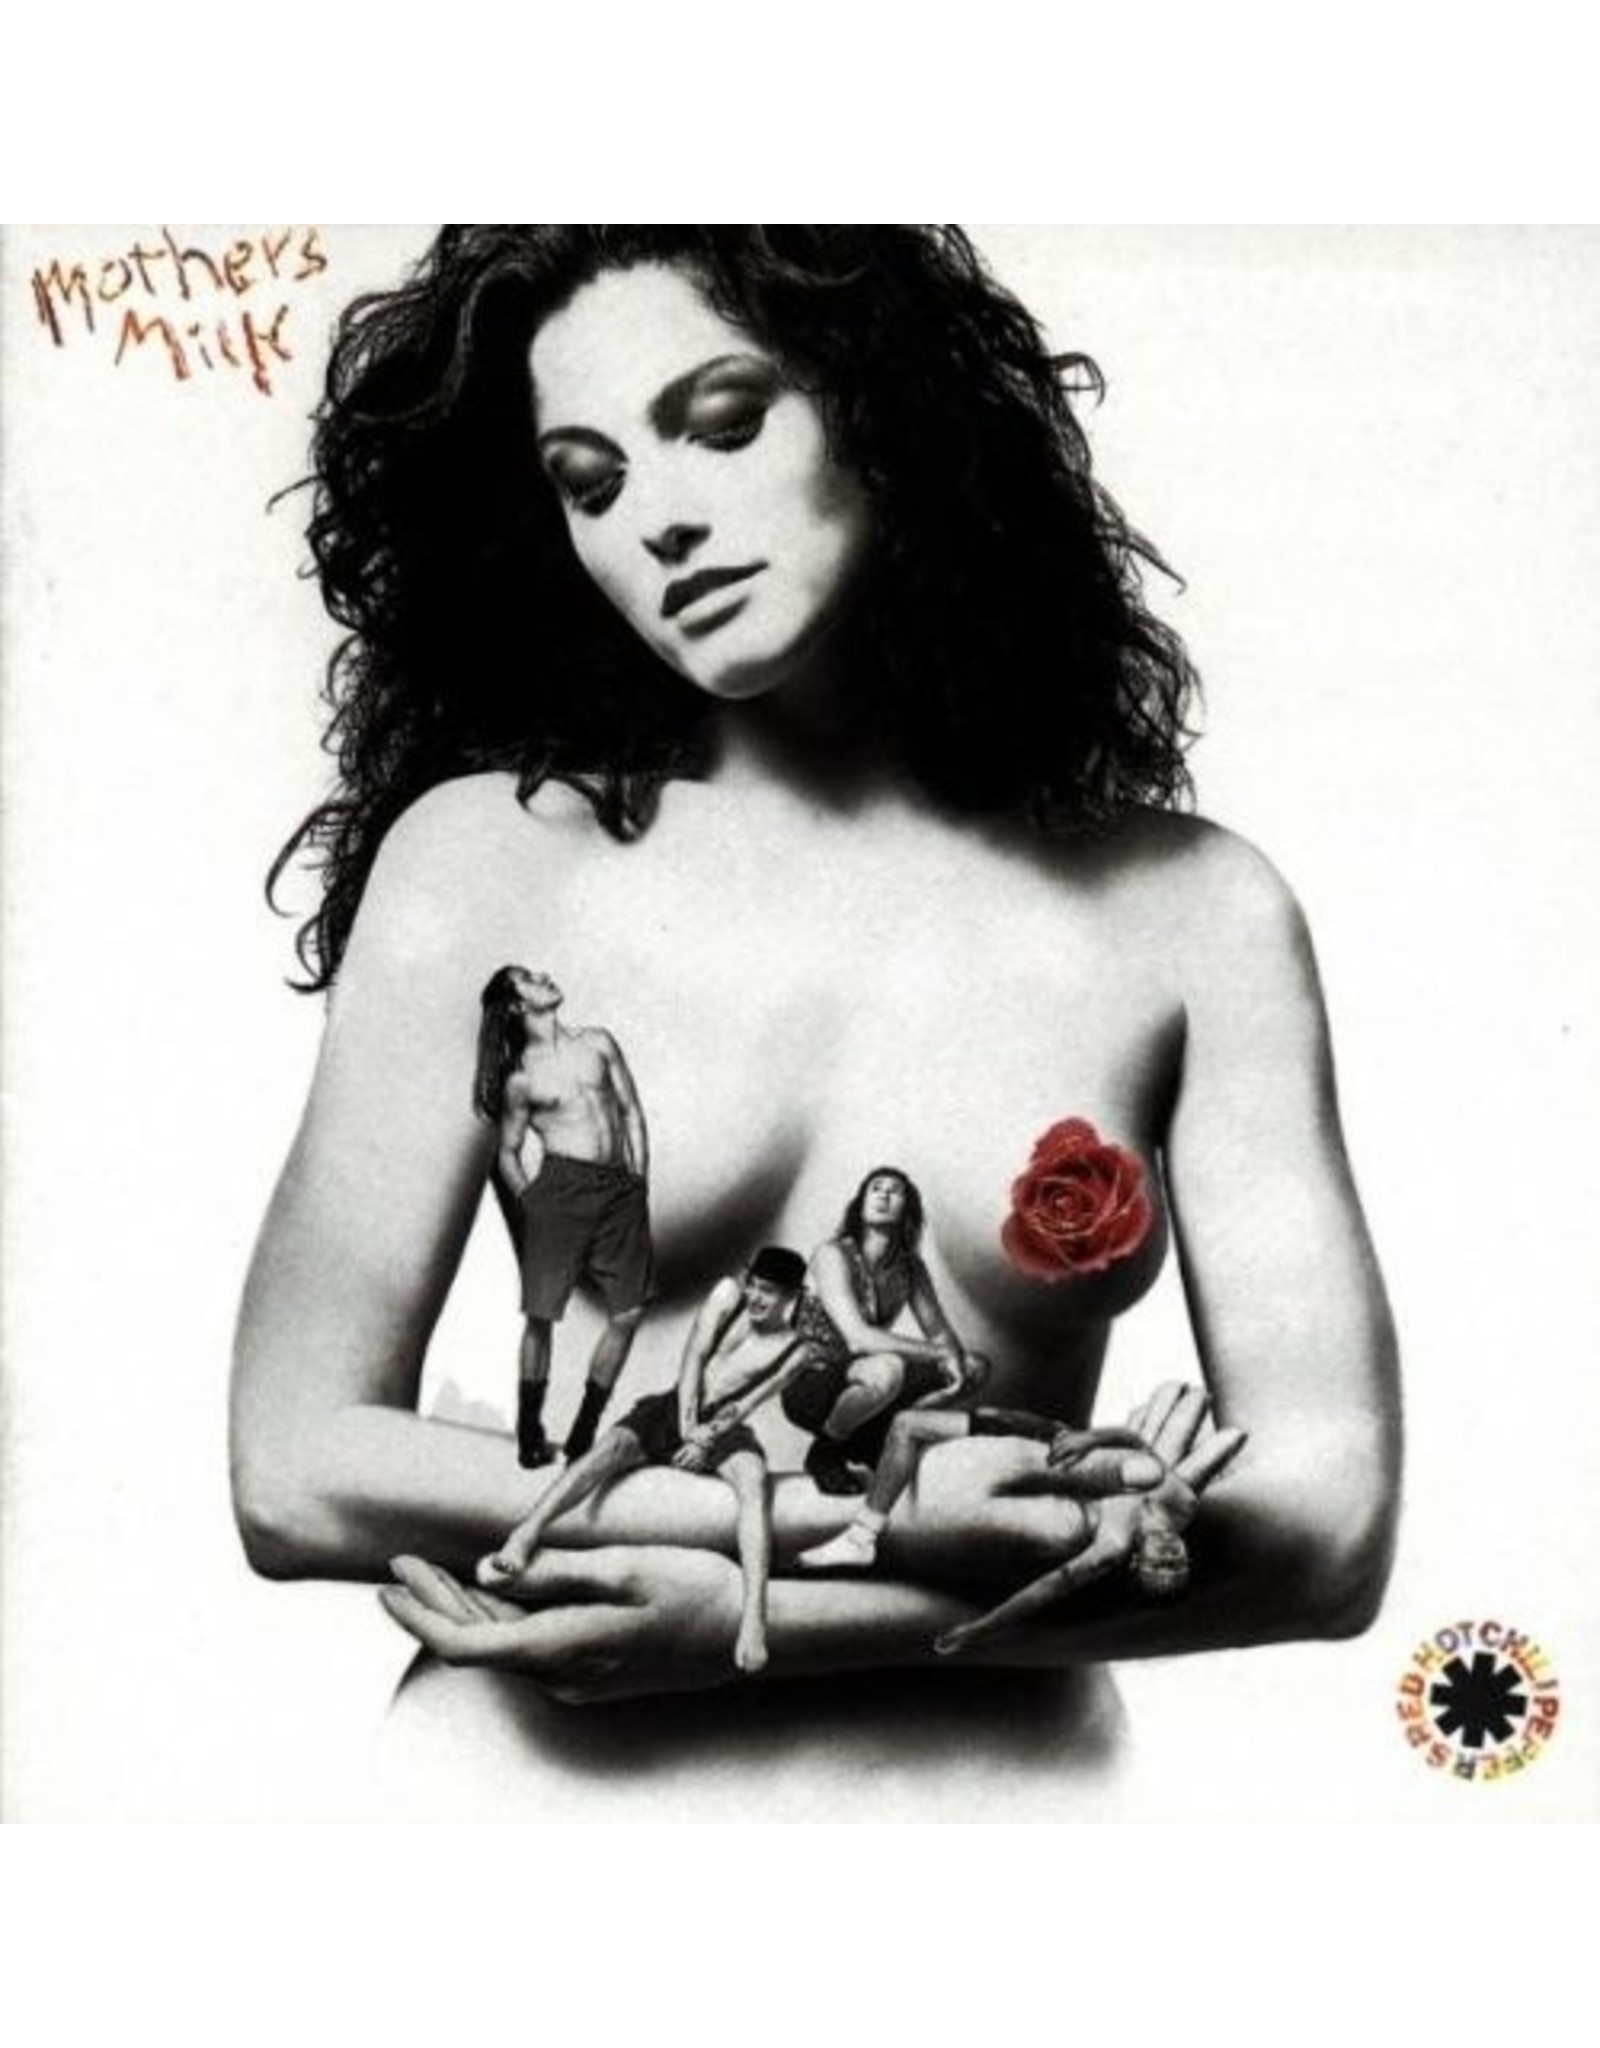 New Vinyl Red Hot Chili Peppers - Mother's Milk LP